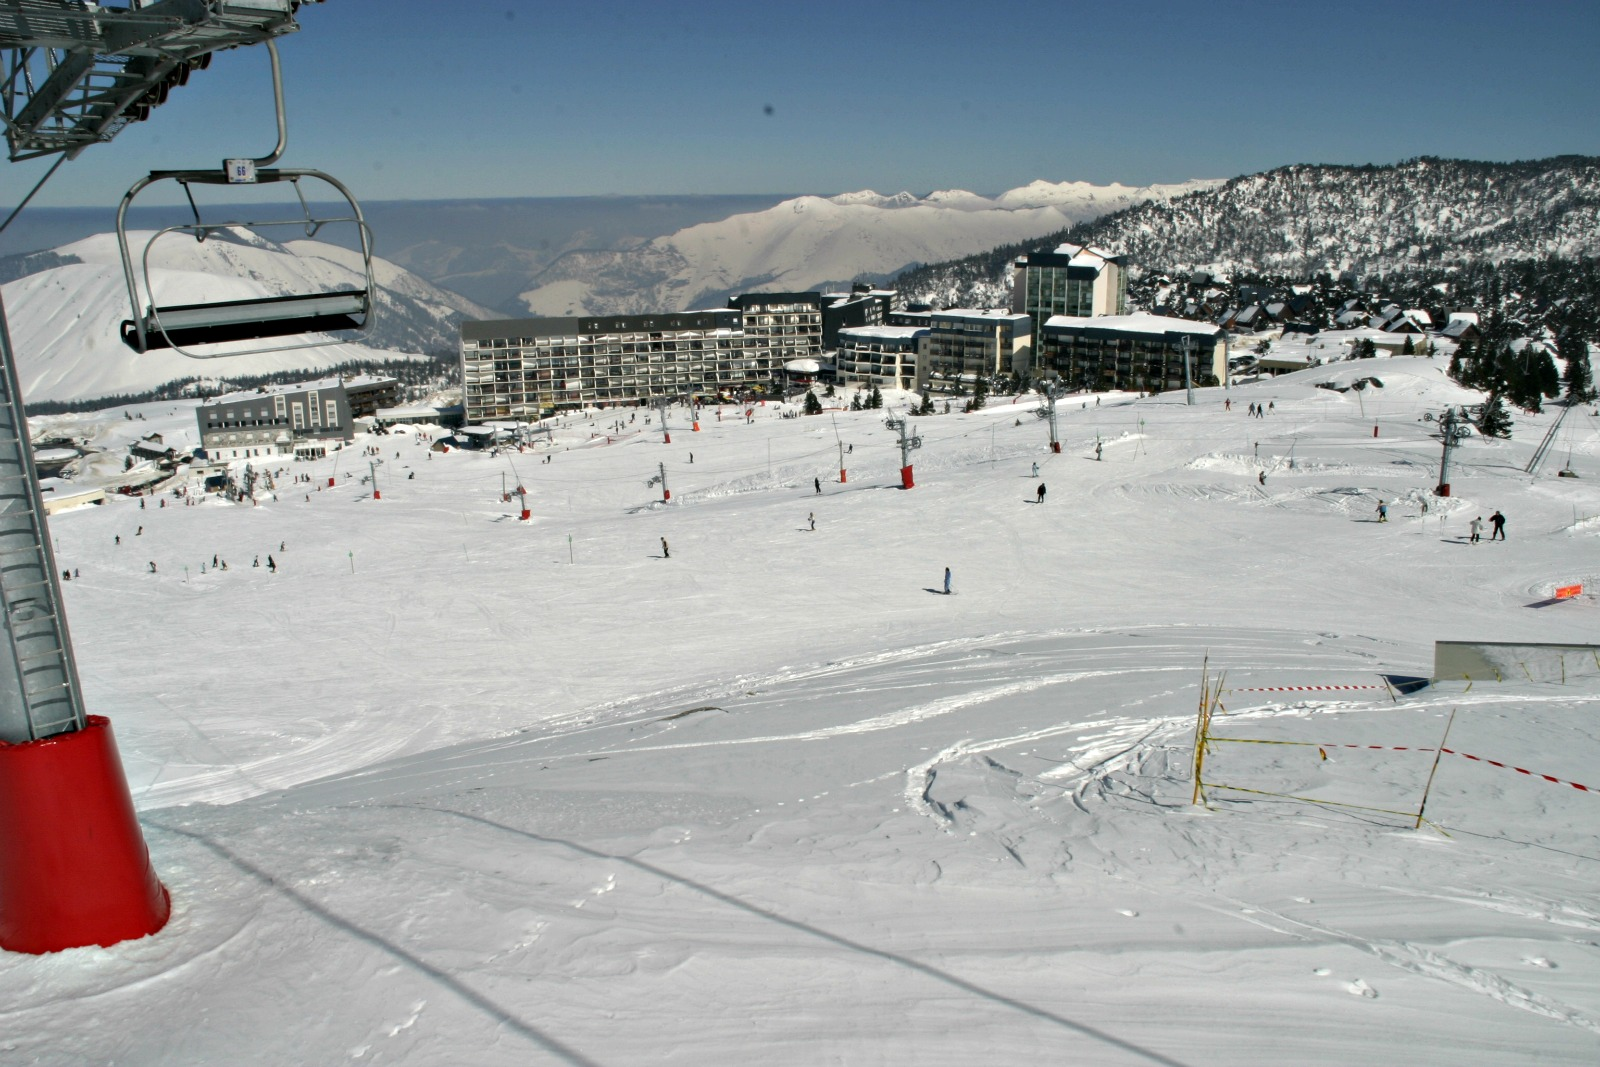 Station de ski la pierre saint martin n 39 py - Office de tourisme la pierre saint martin ...